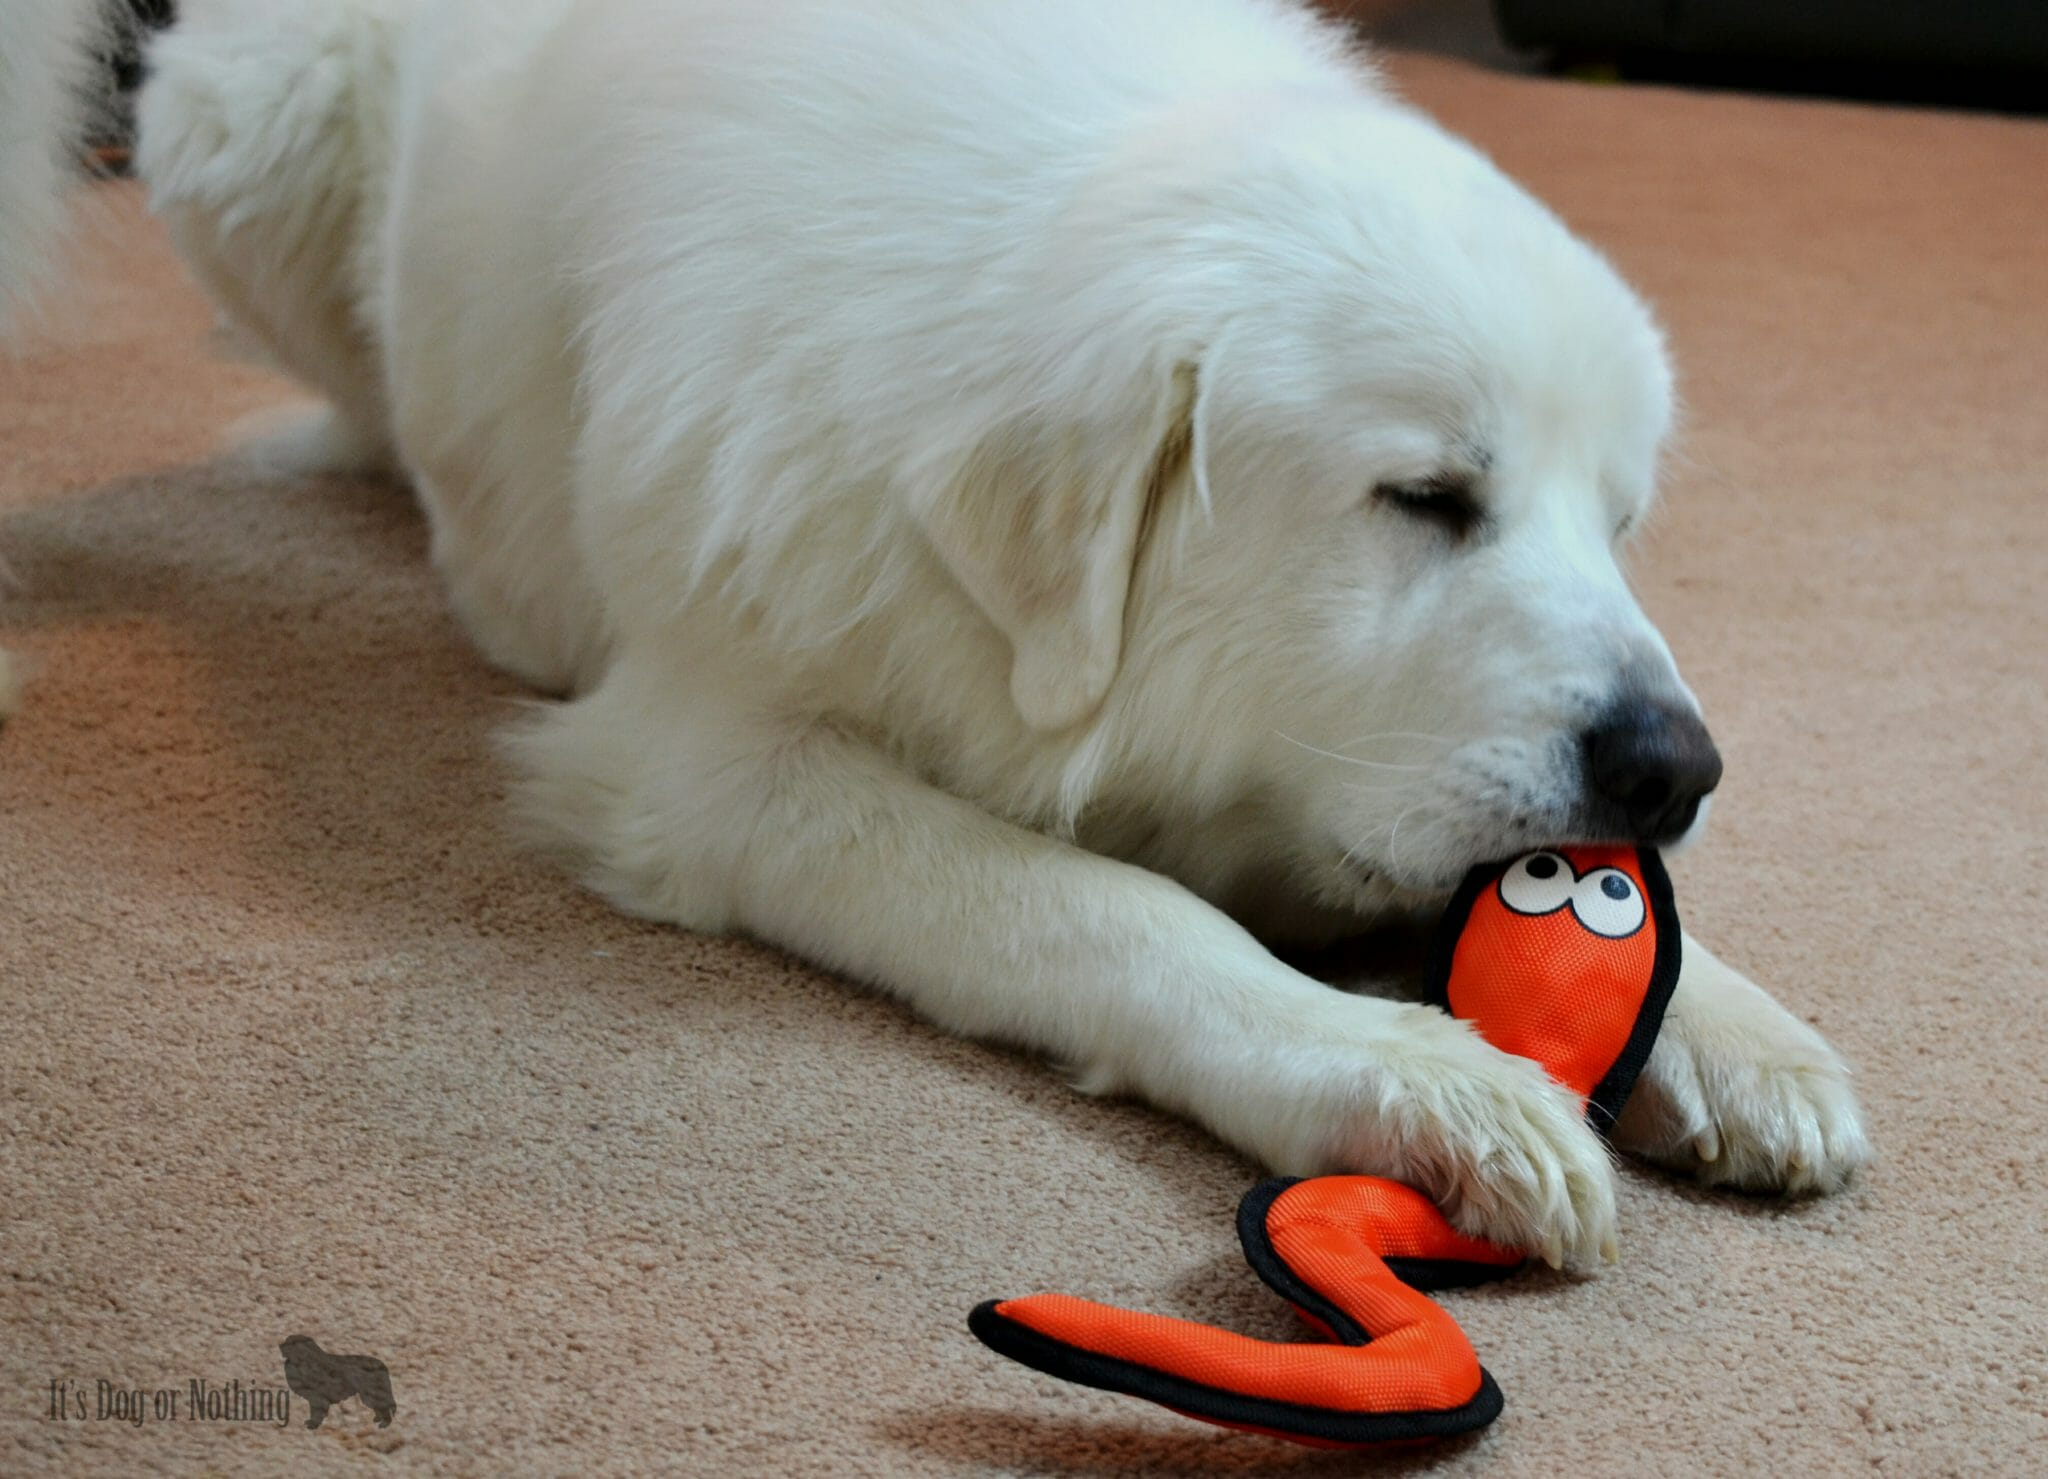 Great Pyrenees and Ruff and Tuff Toy